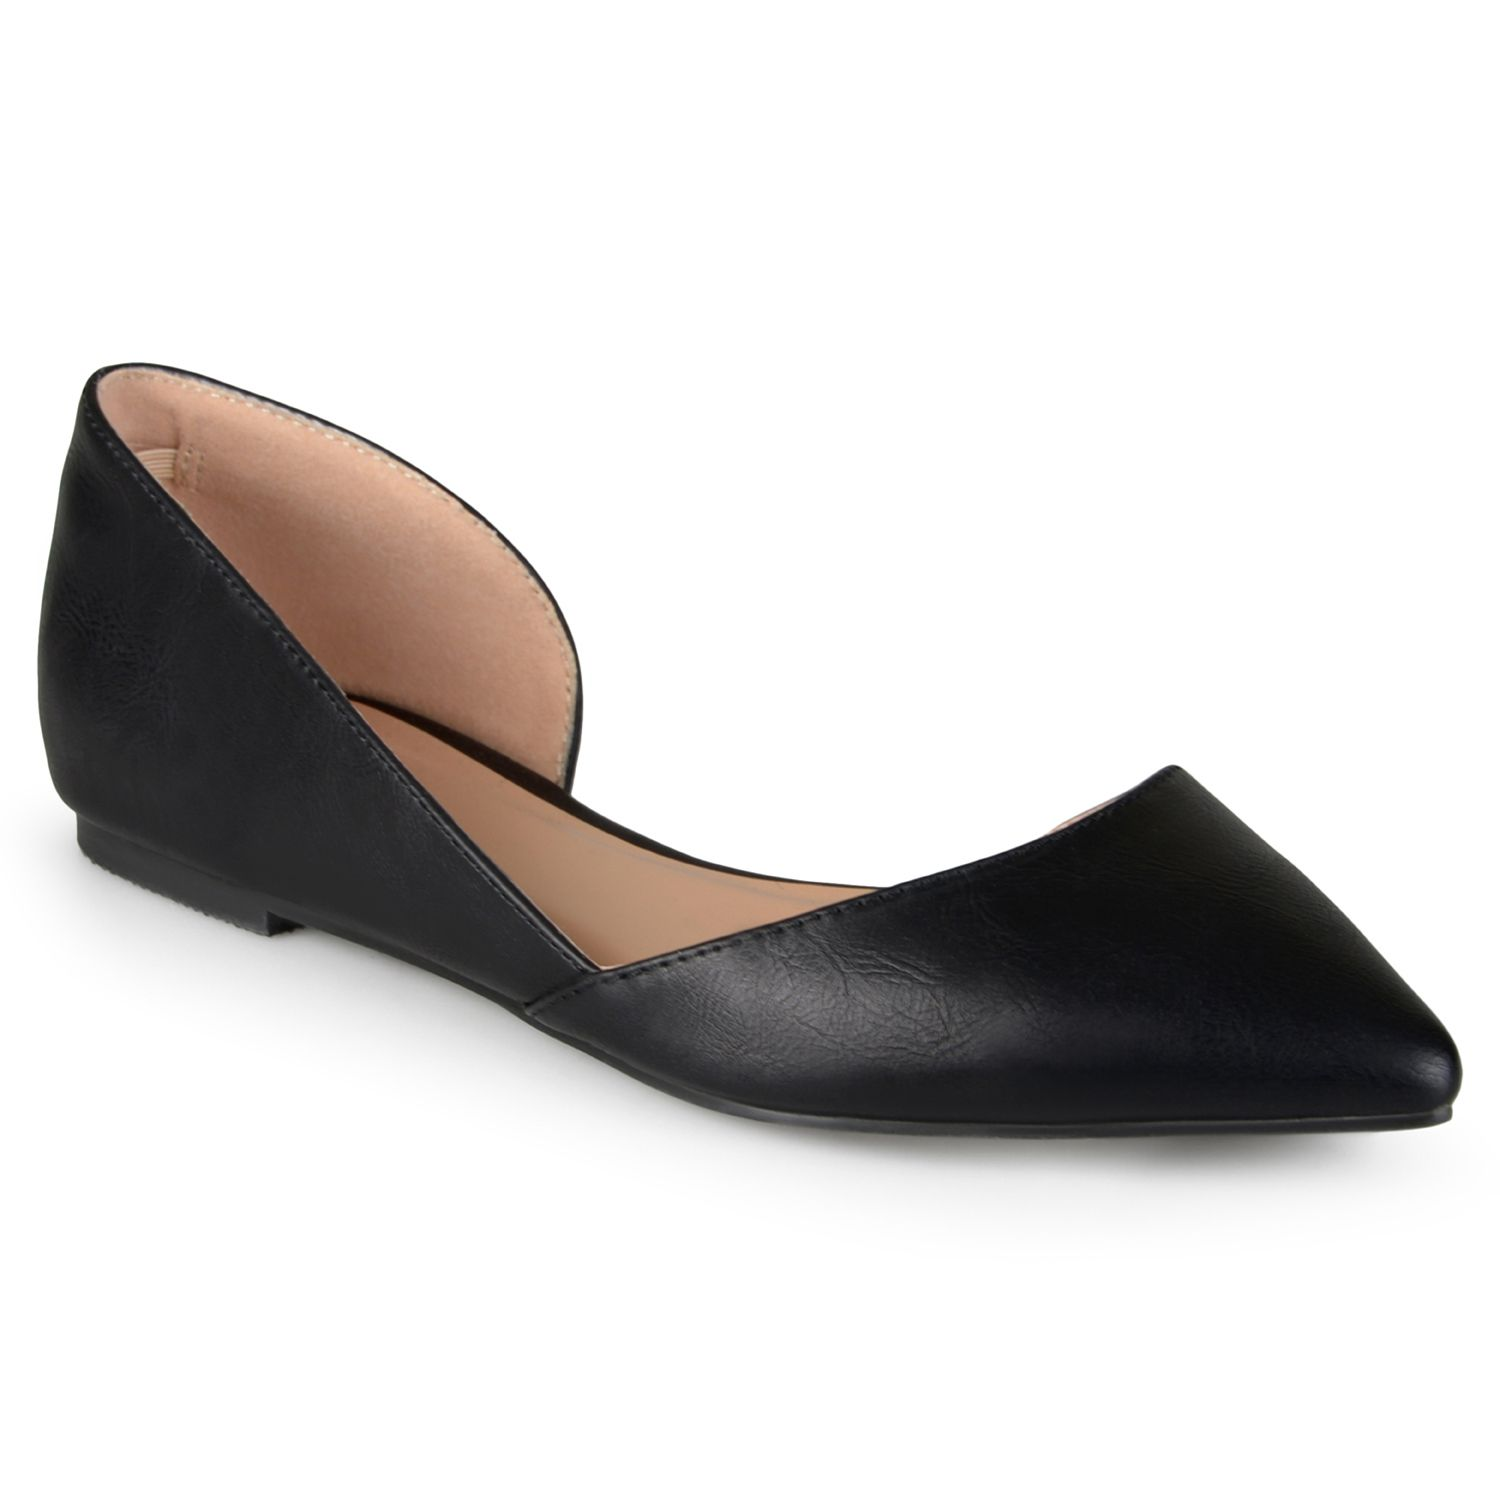 Wide shoes for teens